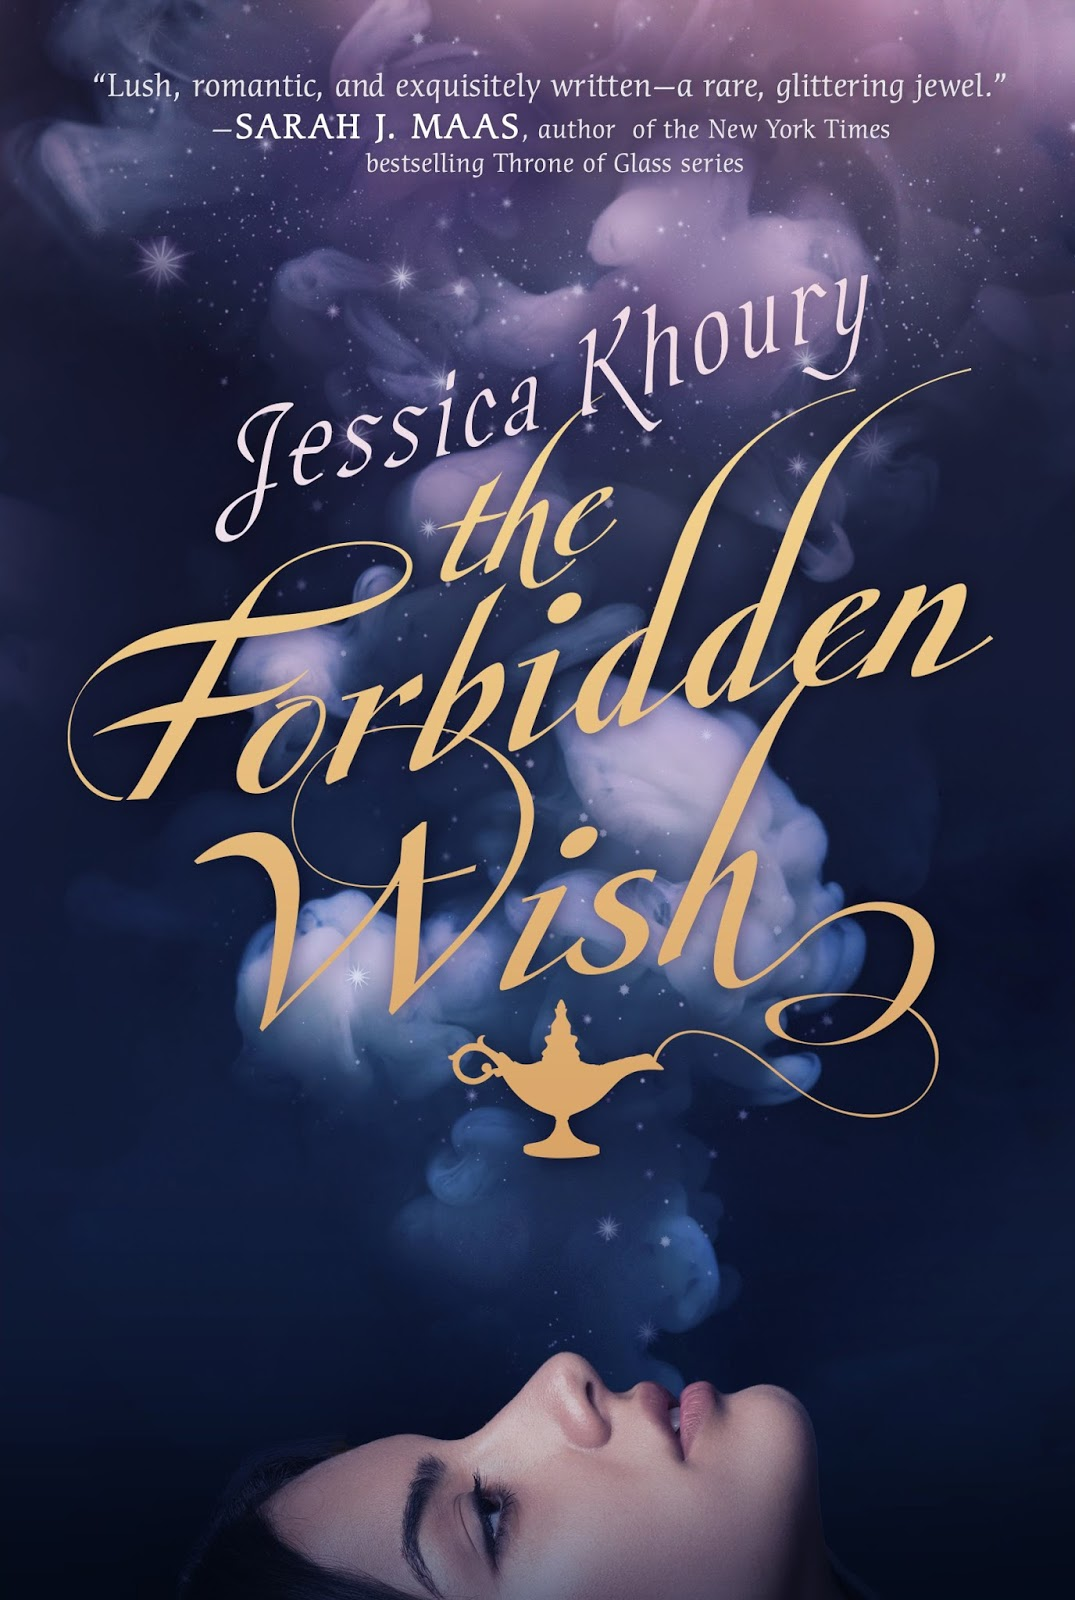 The Forbidden Wish Jessica Khoury